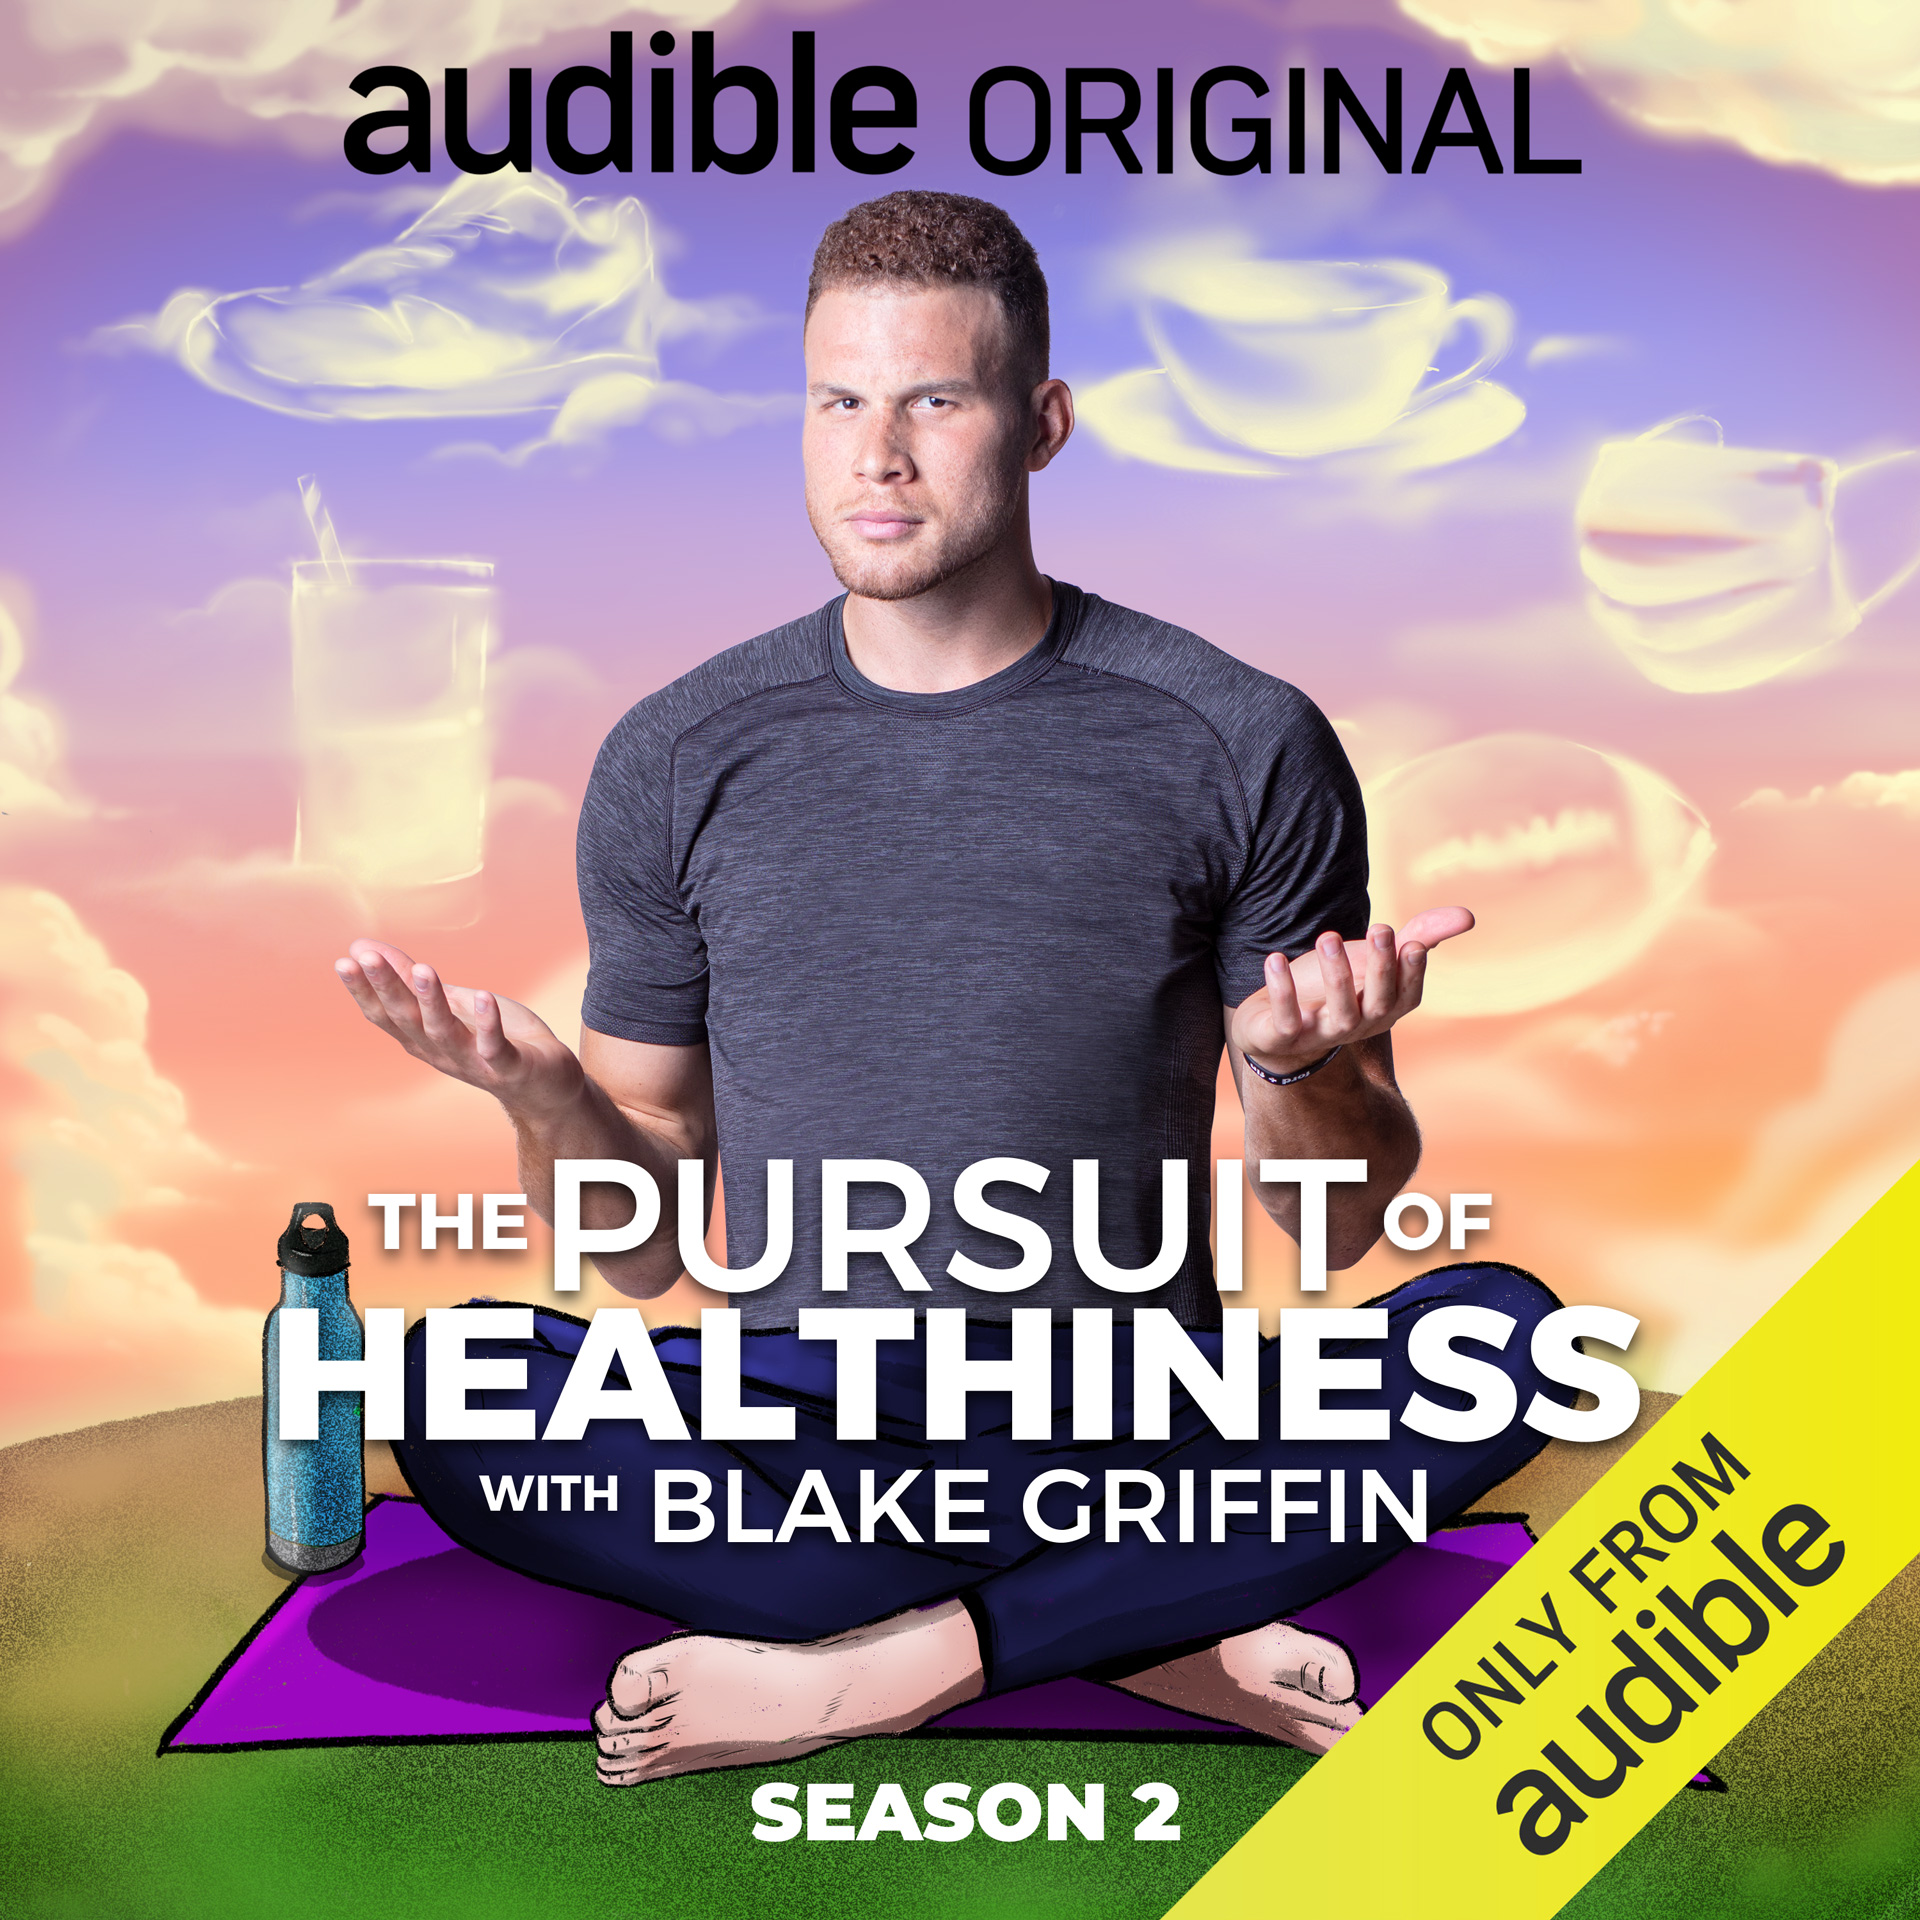 NBA All-Star Blake Griffin's Audible Original Podcast